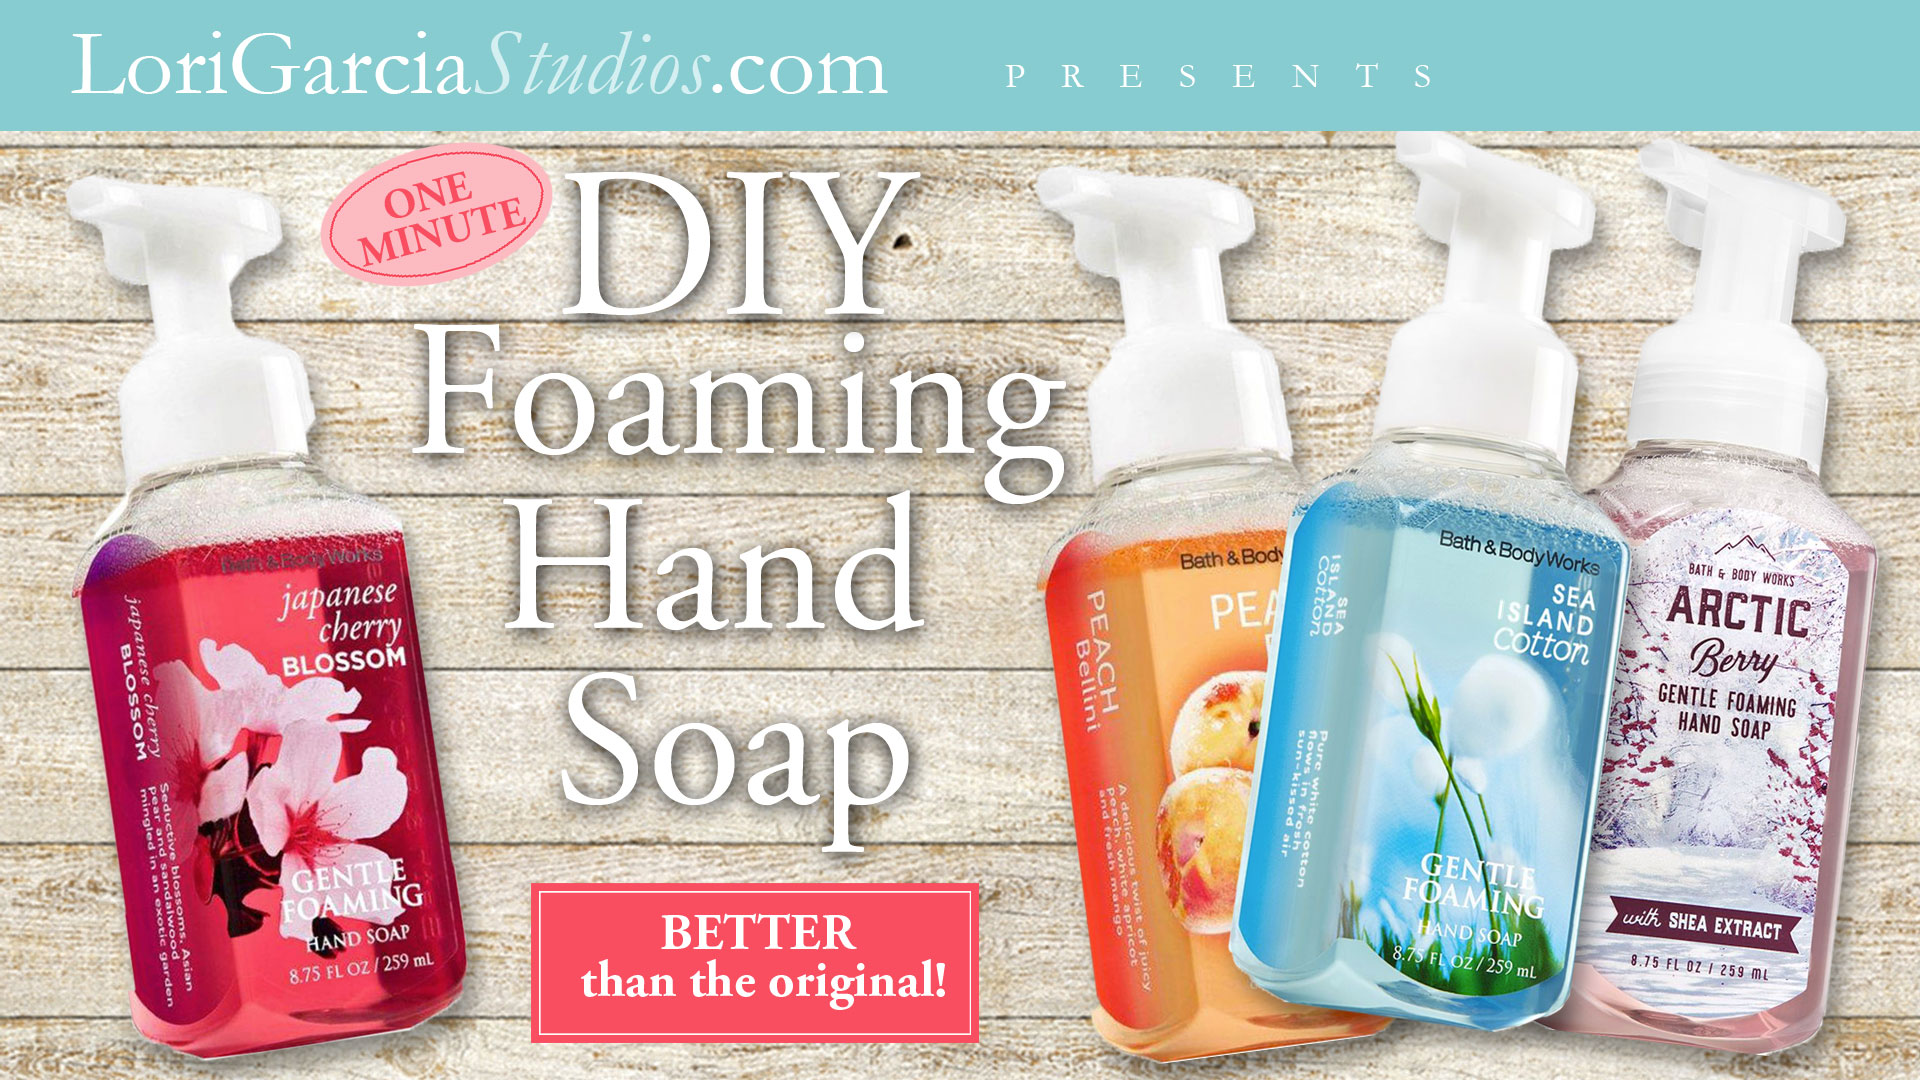 1-Minute DIY Foaming Hand Soap, That Smells Better Than the